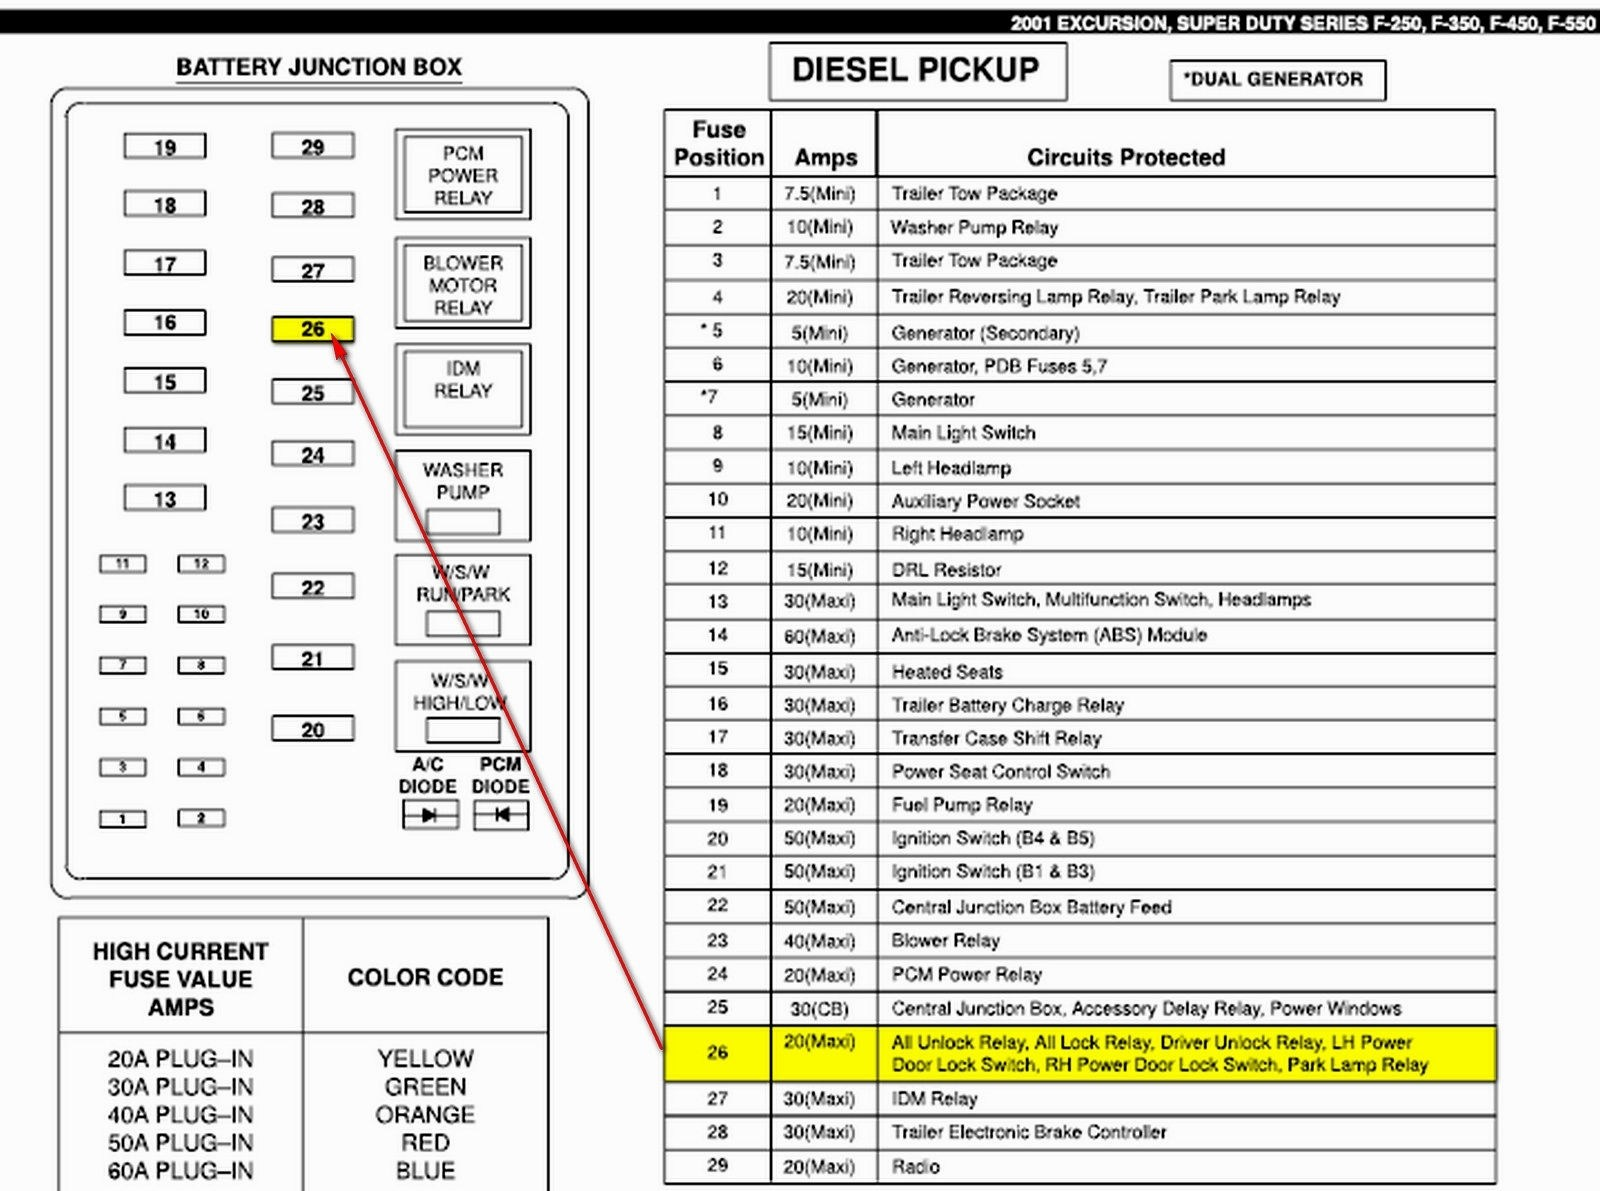 [SCHEMATICS_4PO]  VB_6645] 2010 F 150 Fx4 Fuse Box Schematic Wiring | Fuse Box 2001 Ford F 150 |  | Mous Lectr Ical Perm Sple Hendil Mohammedshrine Librar Wiring 101